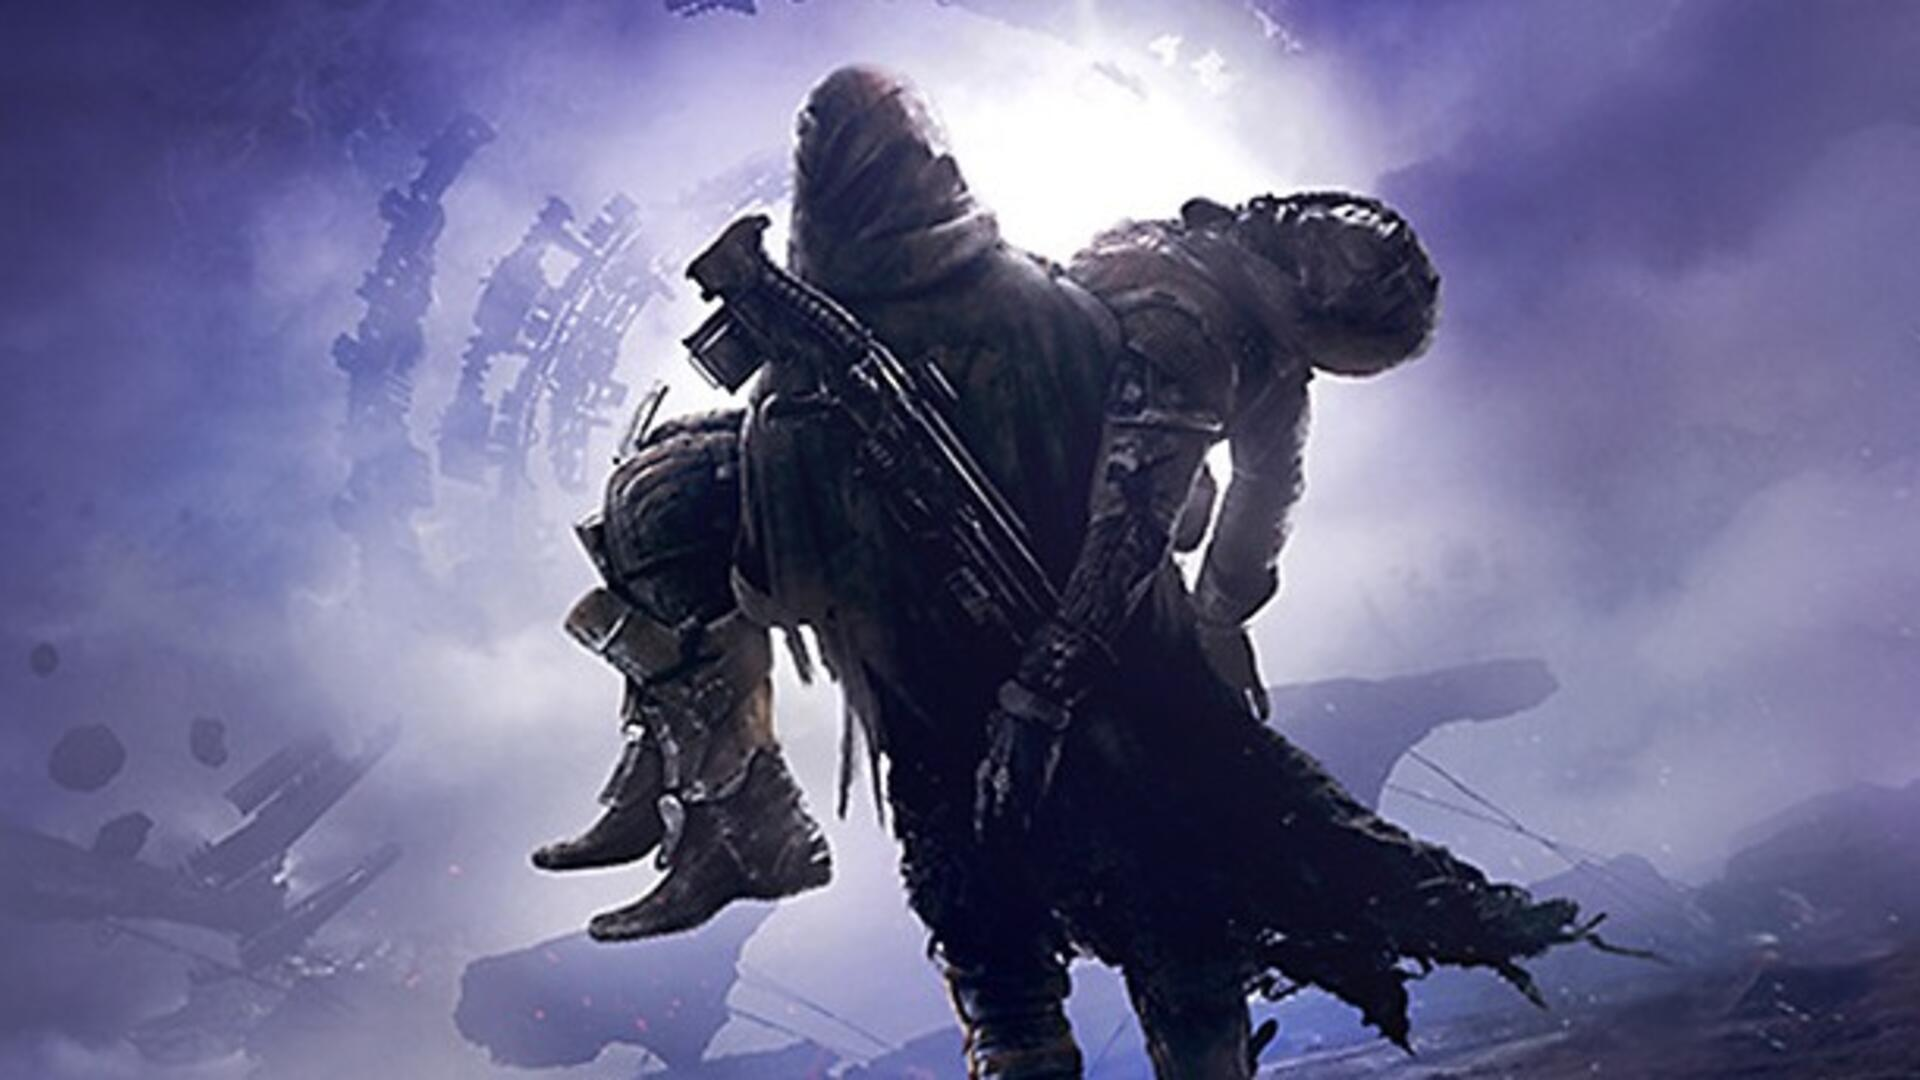 There's New Free Destiny 2 Loot to be Earned Through the Bungie